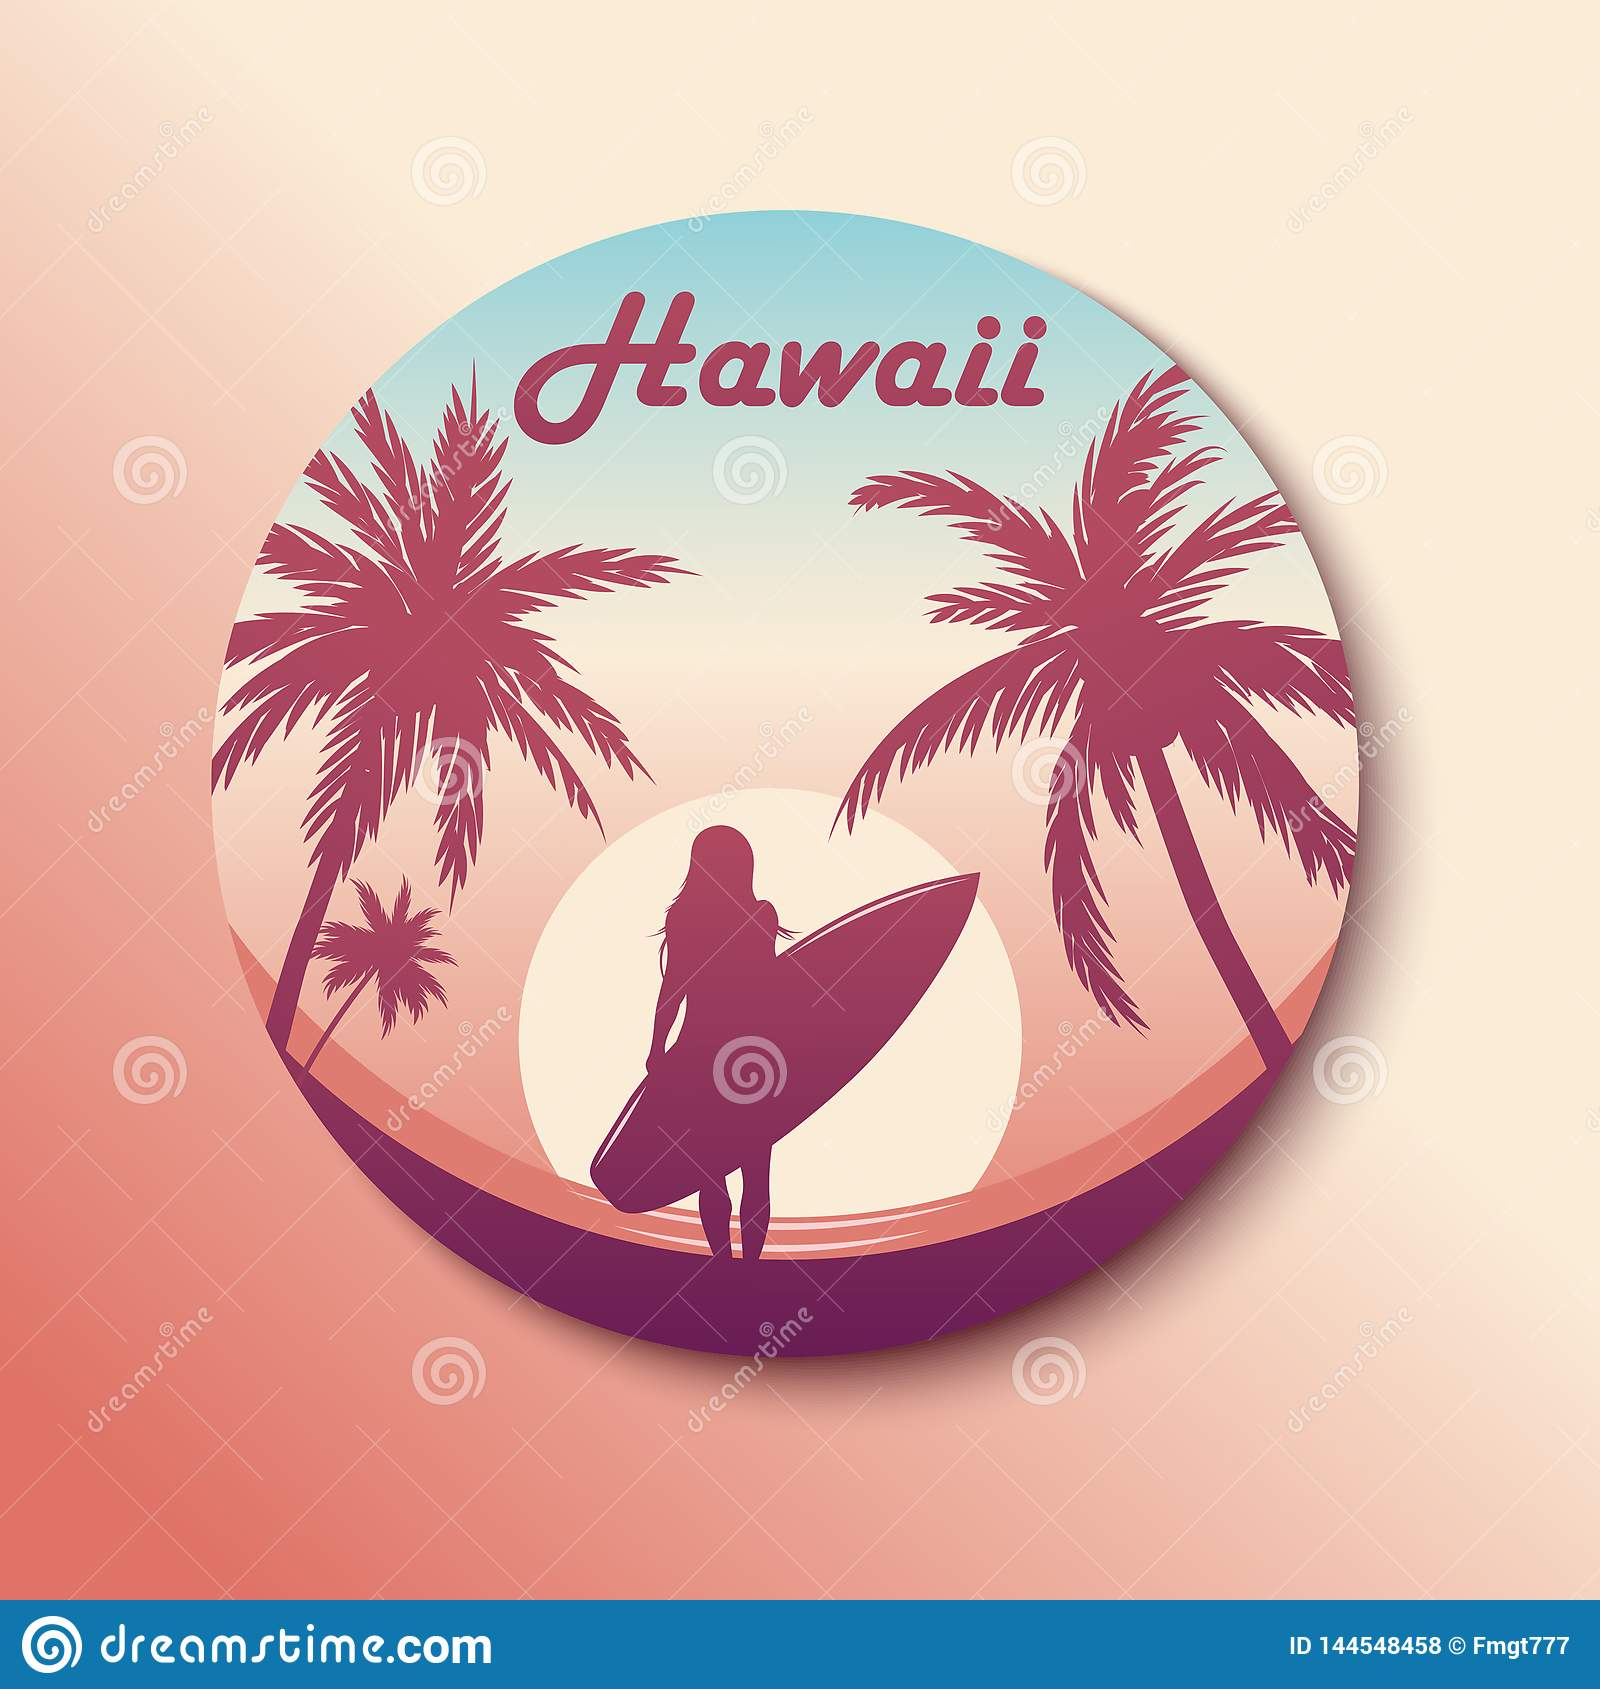 Circle Hawaii Sticker. Surfing girl. With shadow. Vector